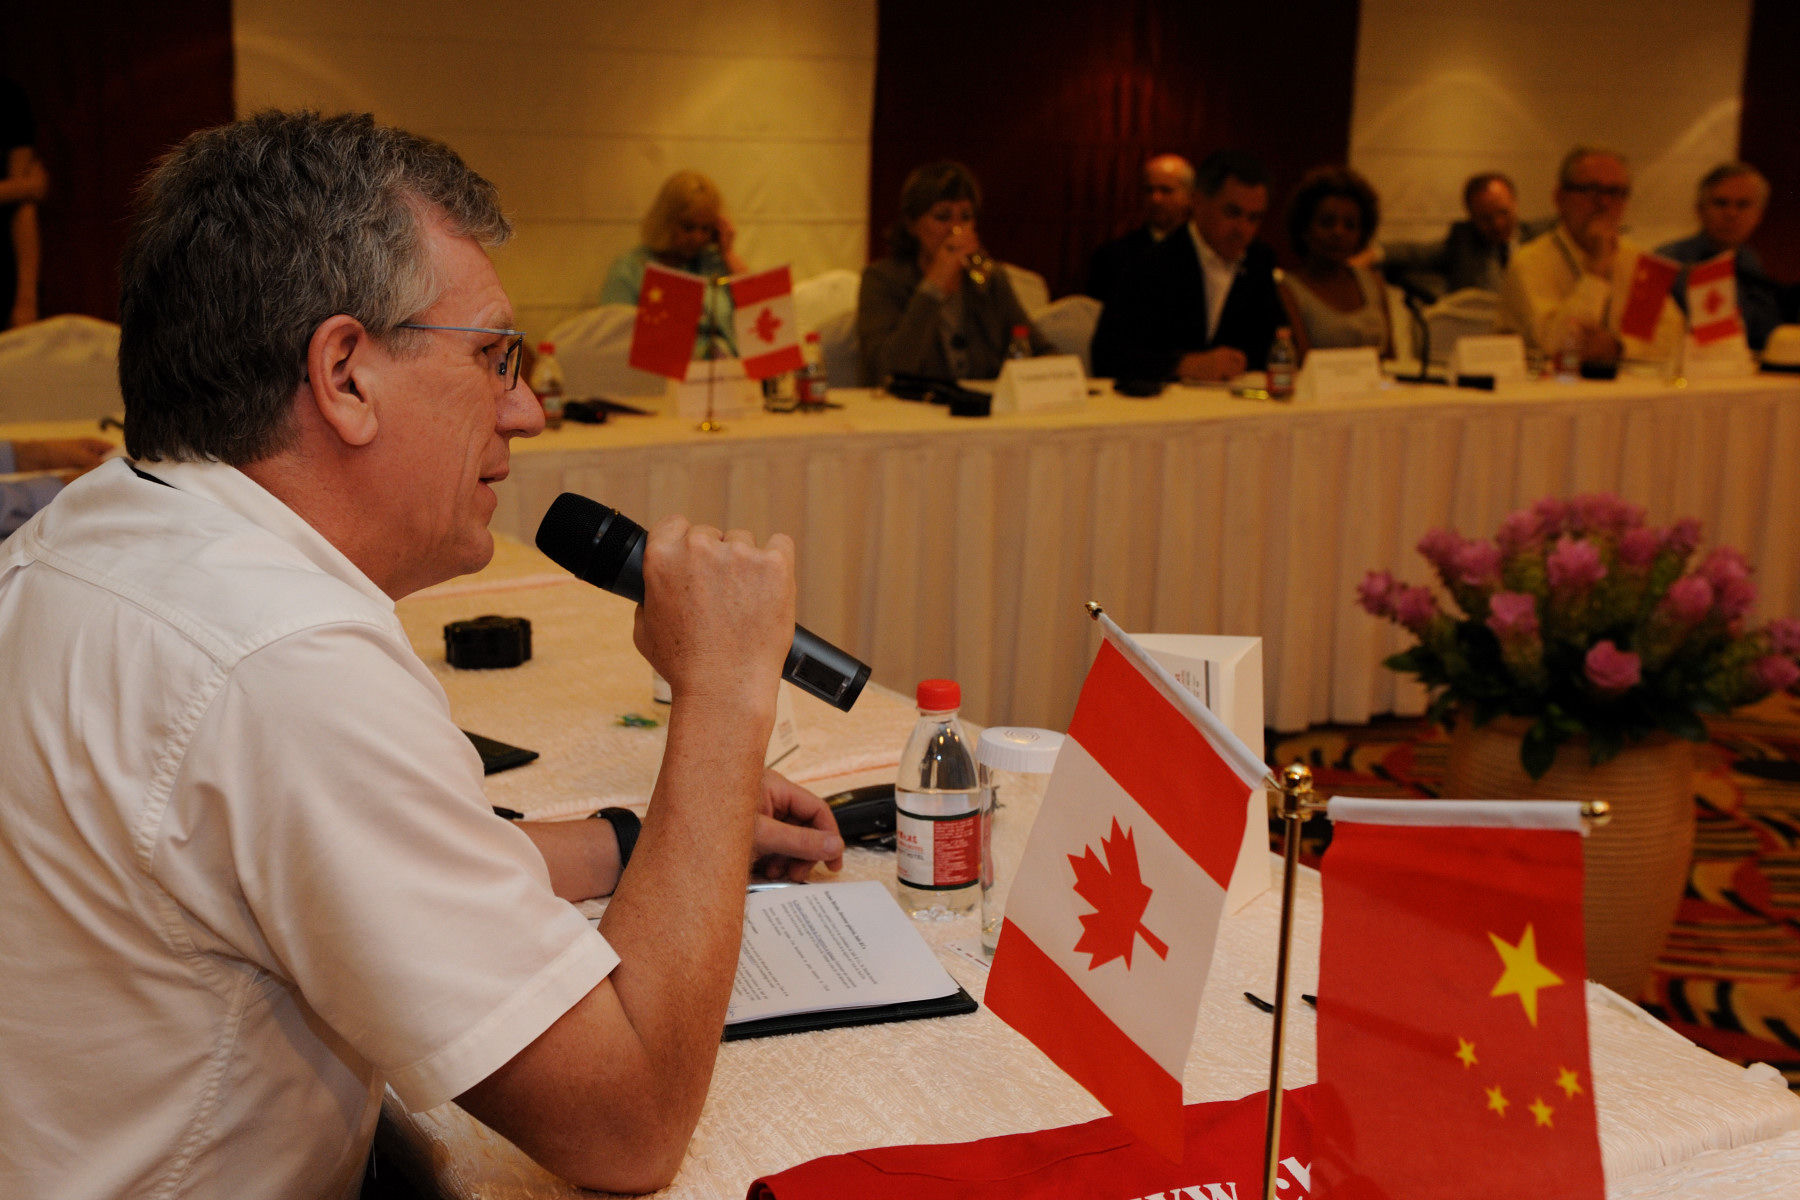 Canadian delegates participated in the event.